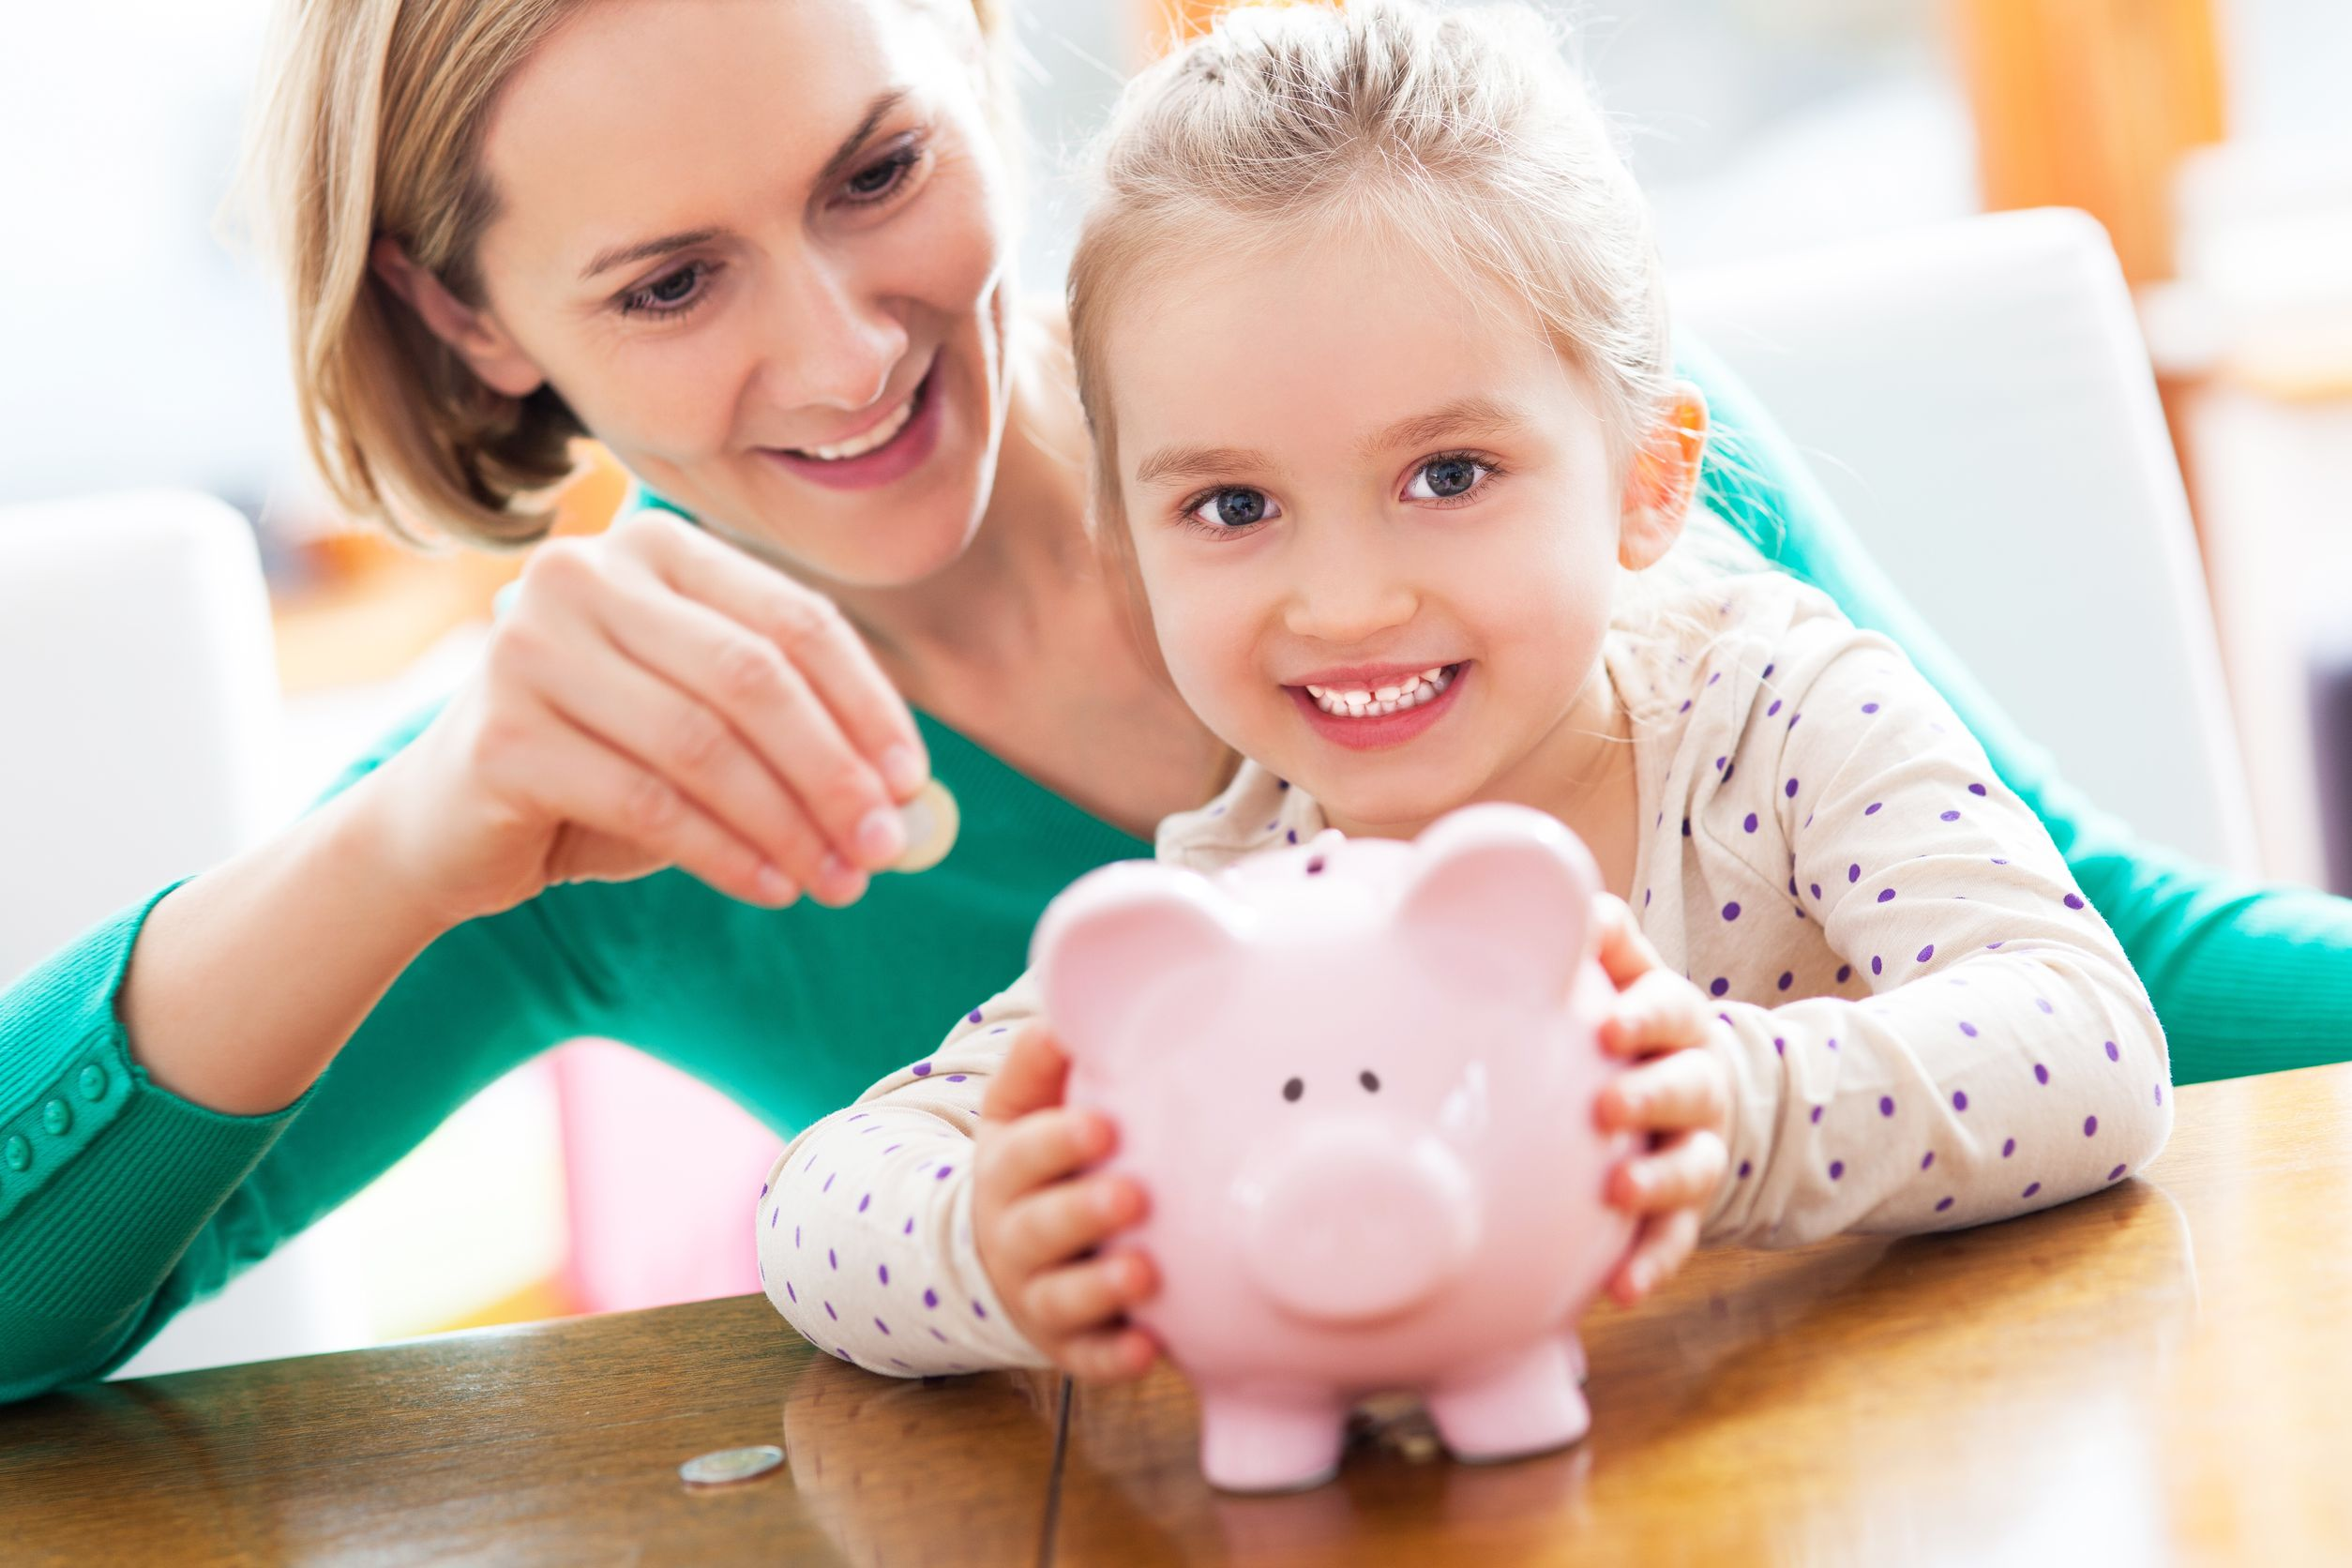 16193879 - mother and daughter putting coins into piggy bank